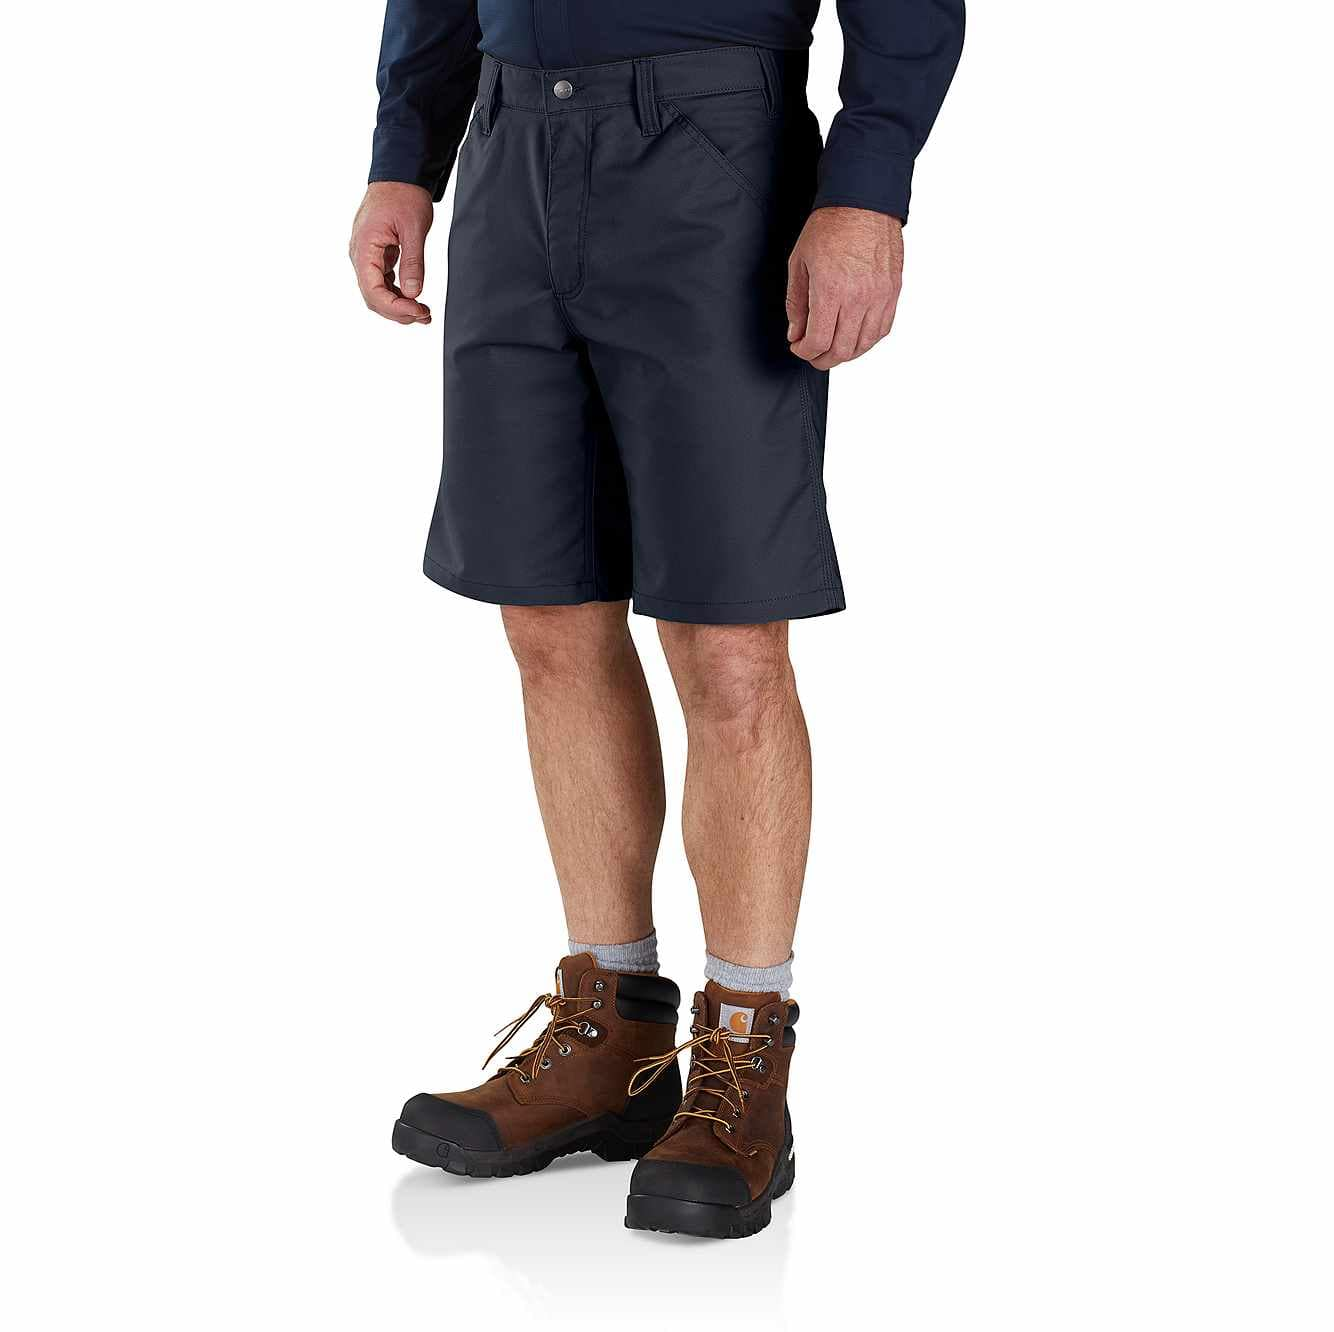 Picture of Rugged Professional™ Series Men's Relaxed Fit Short in Navy